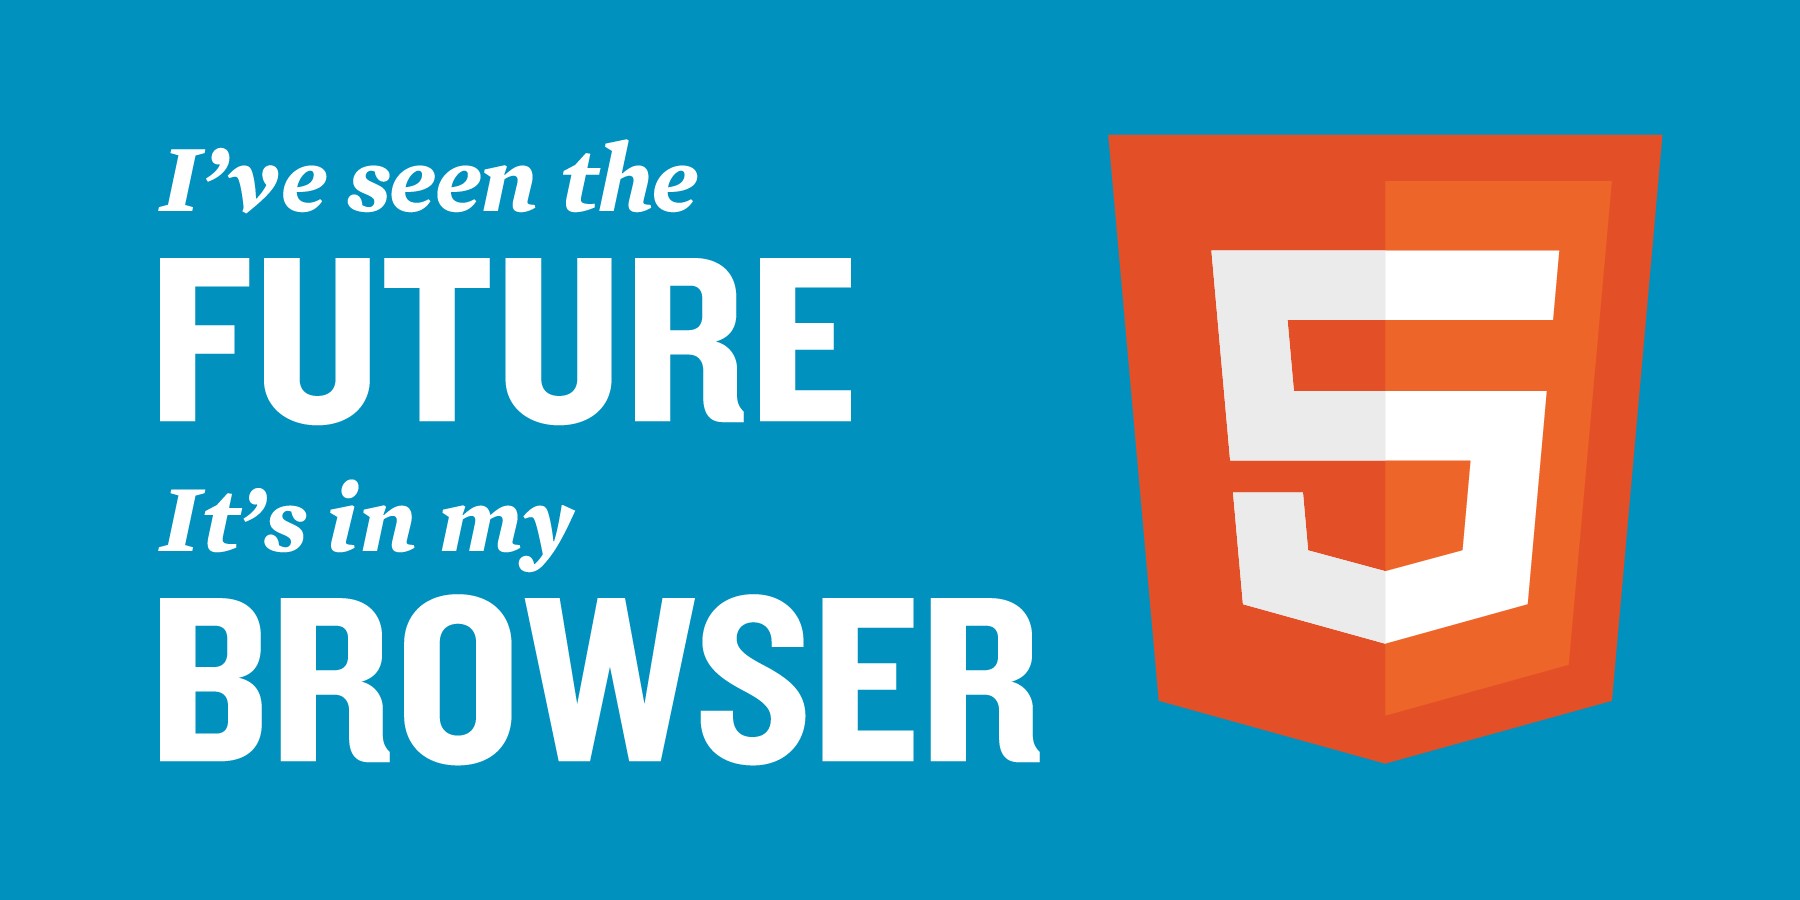 Goodbye Adobe Flash, Hello HTML5 - Free Goodbye PNG HD